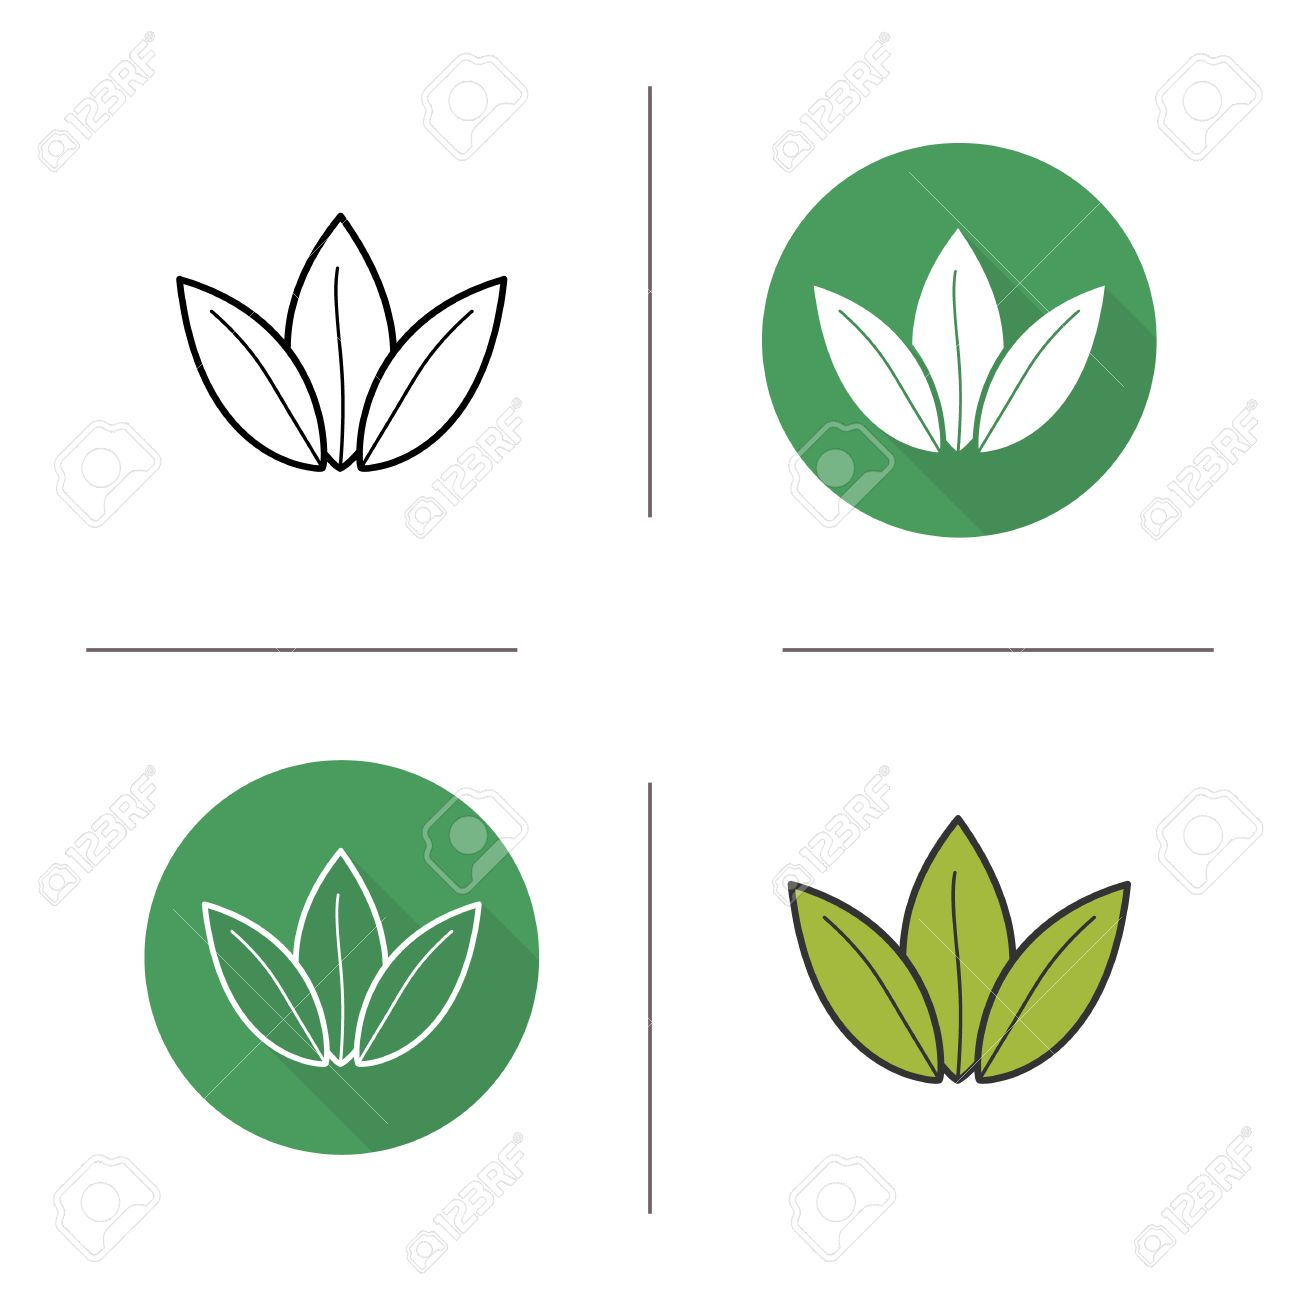 Green Tea Leaf Flat Design, Linear And Color Icons Set. Loose Tea Leaves In